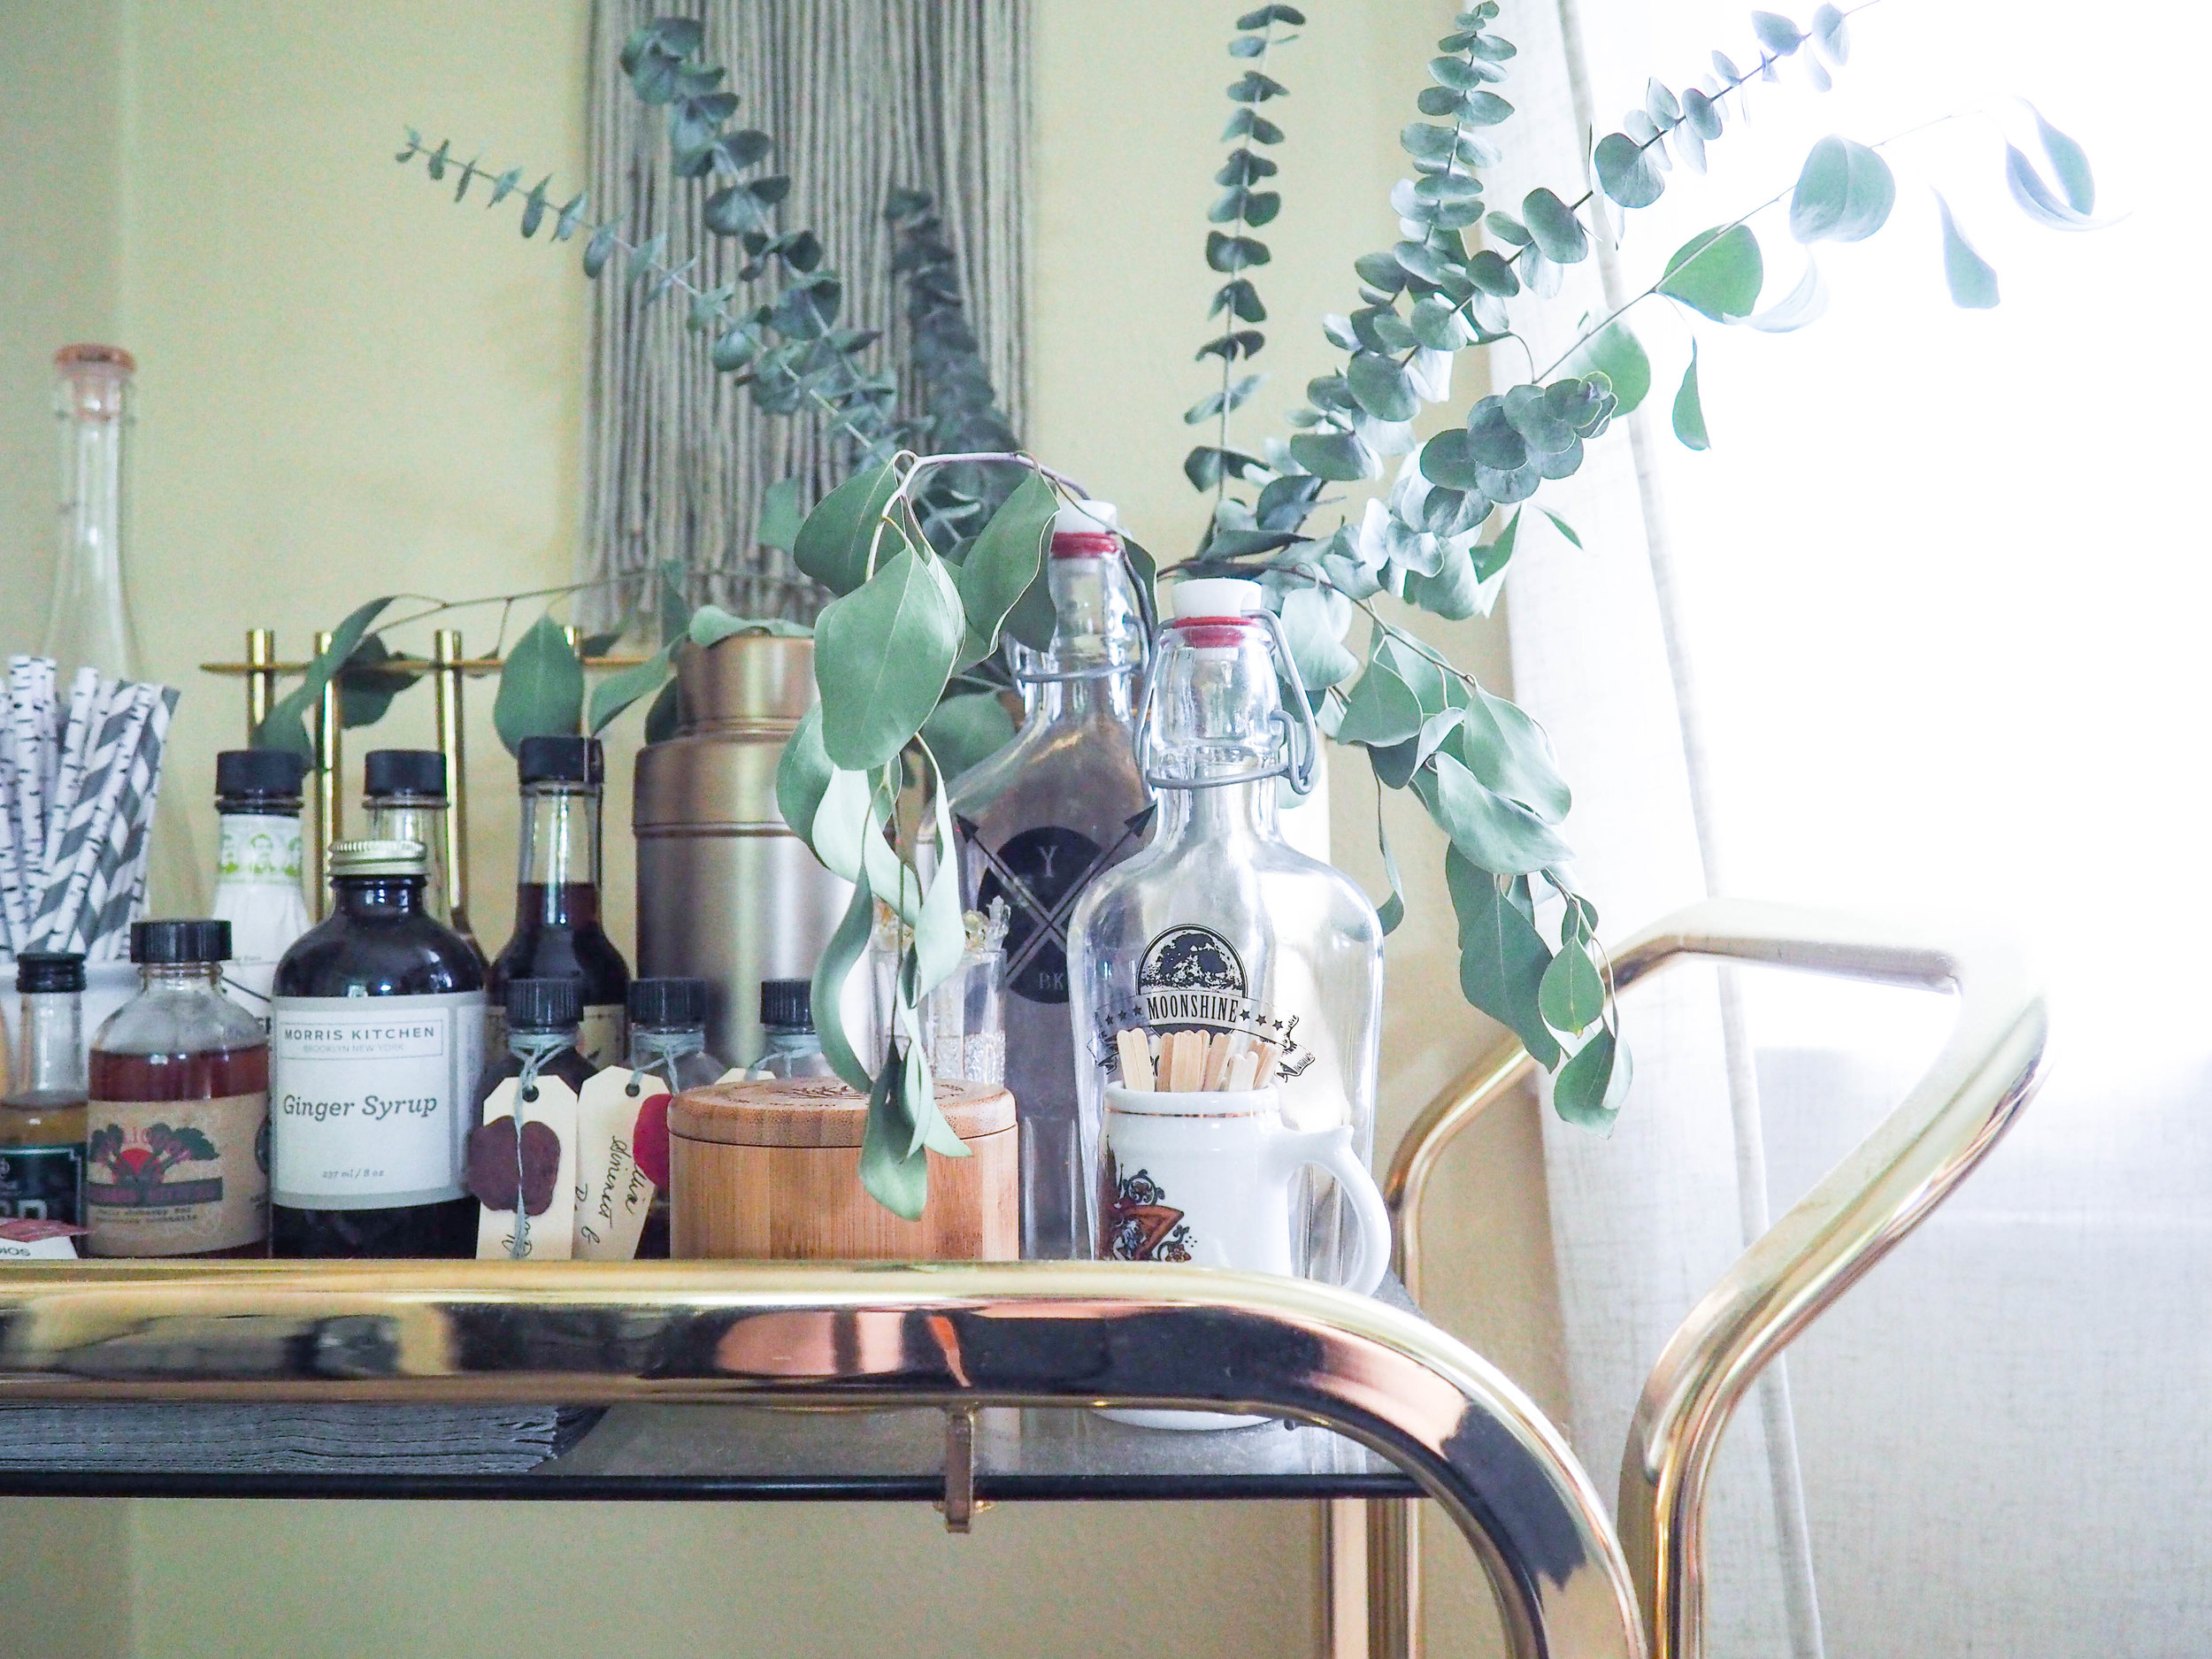 A vintage brass bar cart that I purchased ages ago. It has the perfect amount of wear and patina.